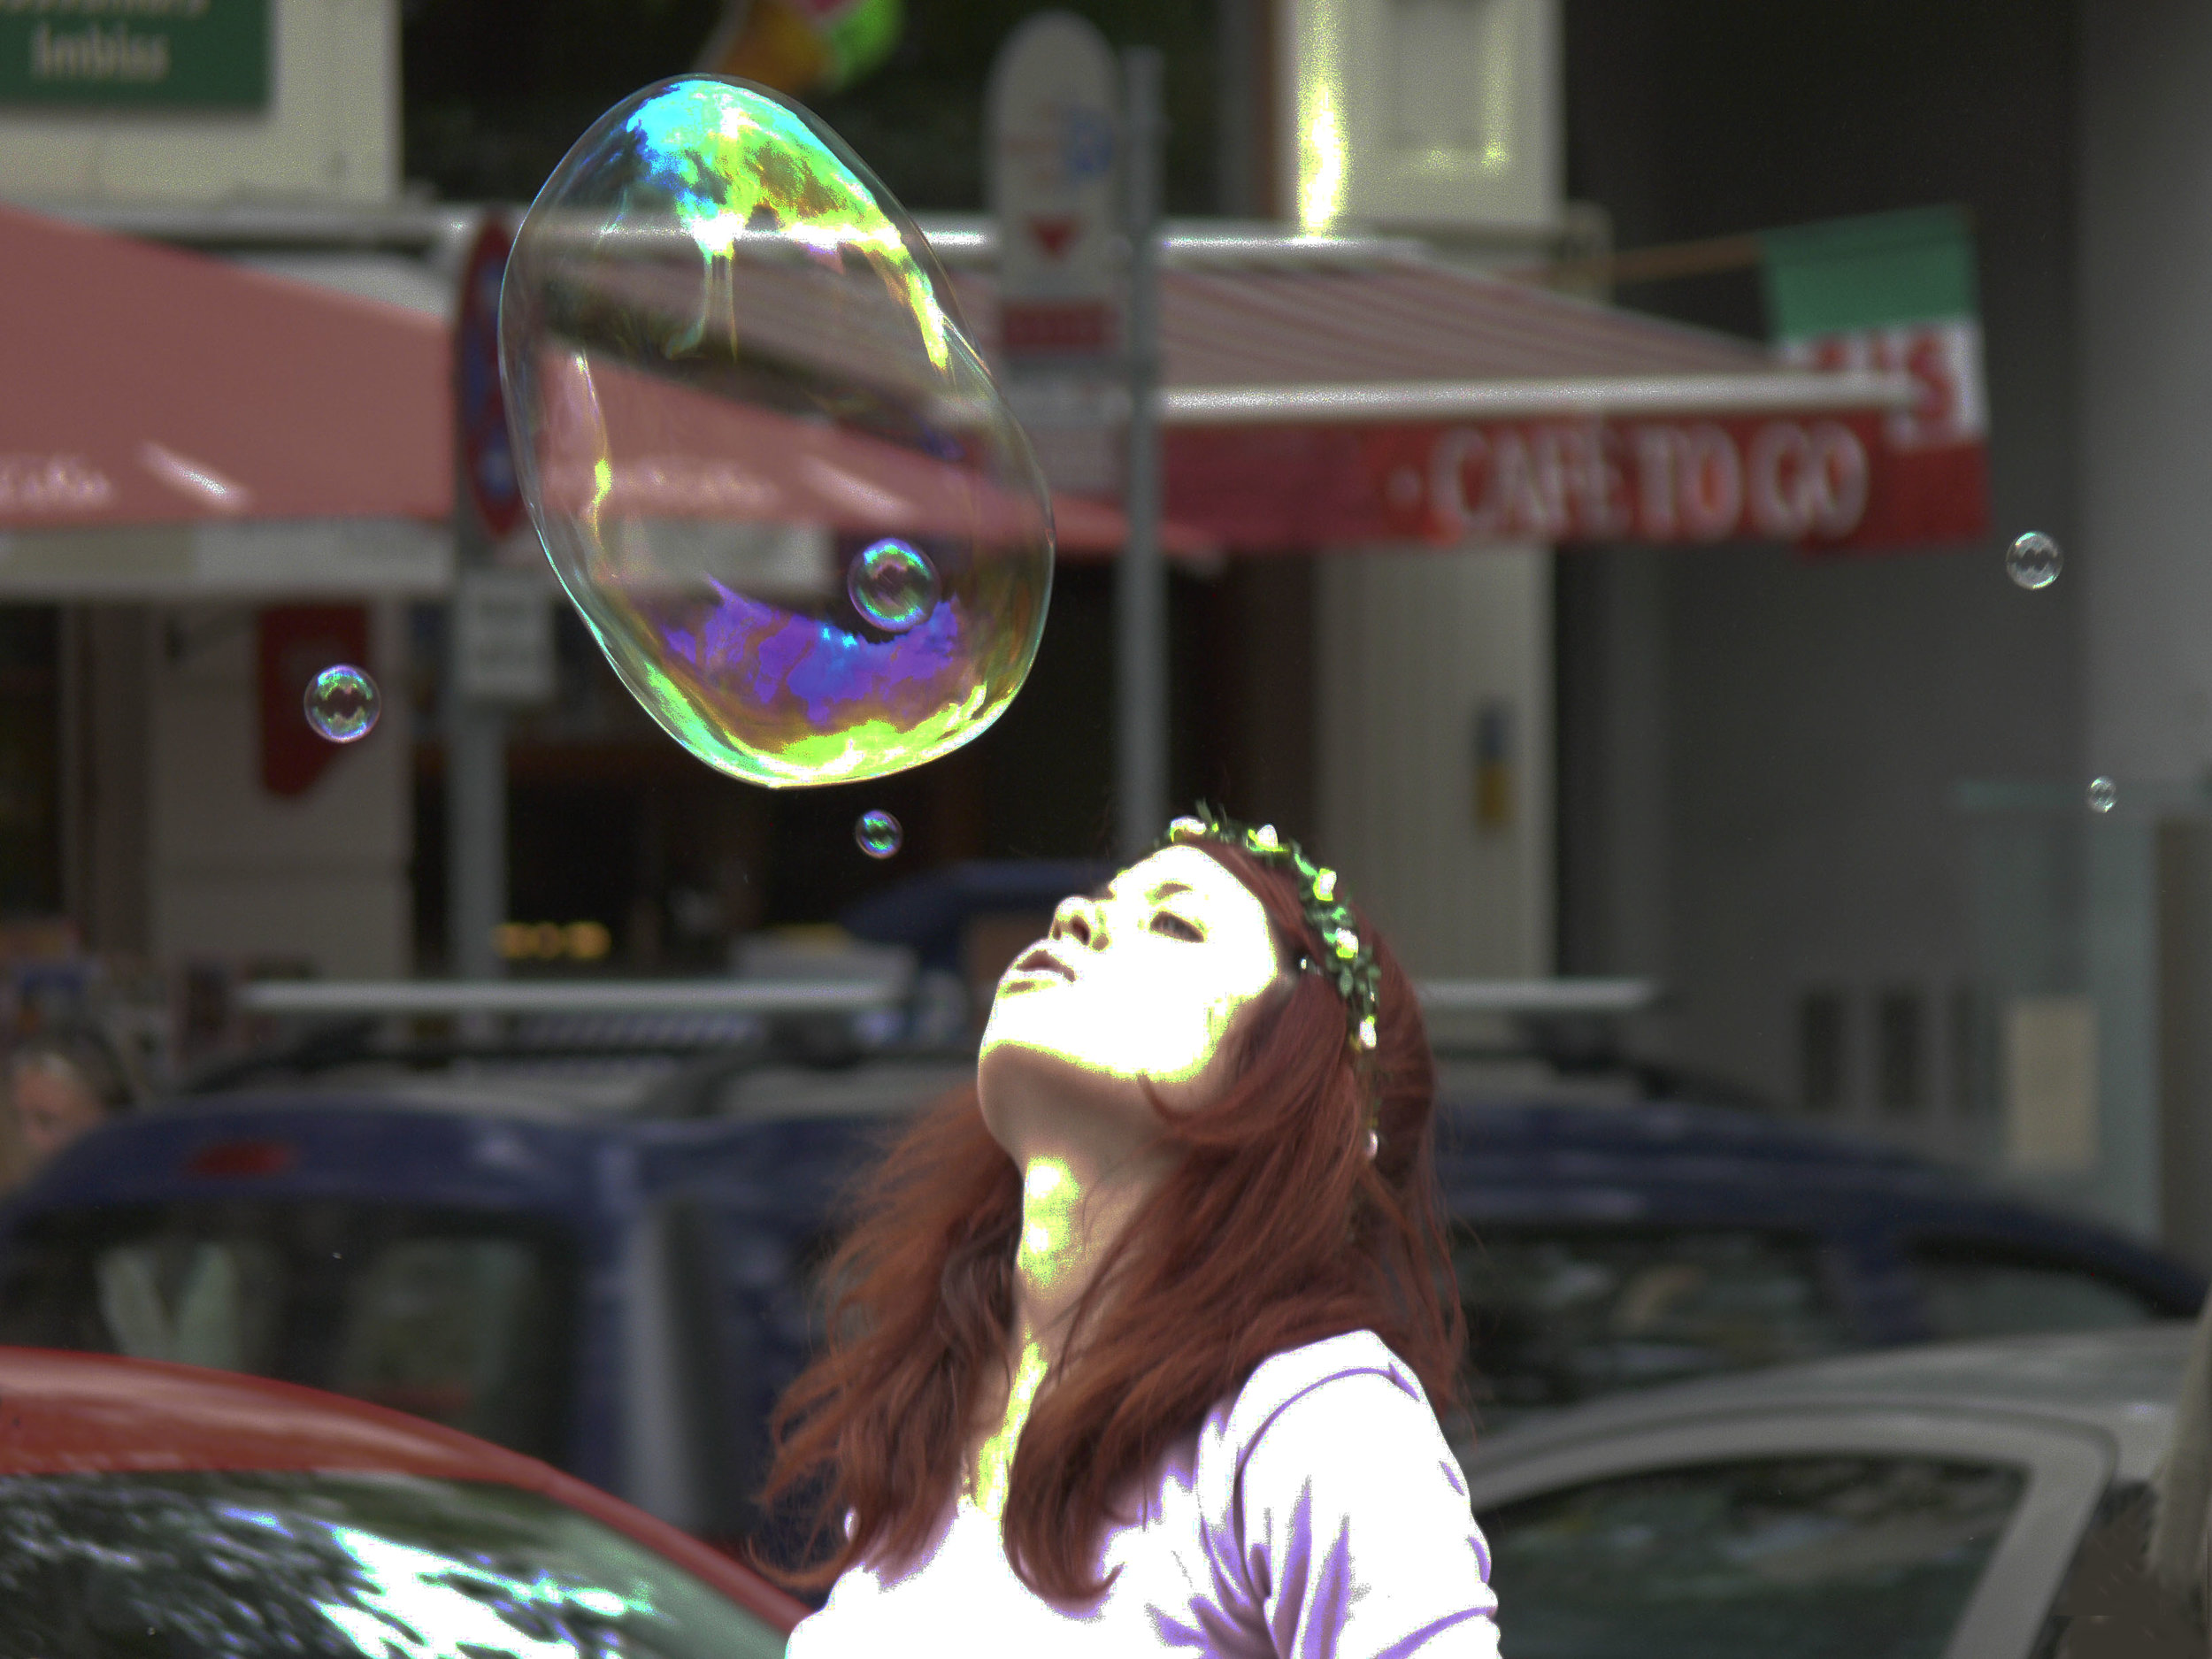 Baloon Girl 13 X 19 Digital print (larger sizes per request)  $175